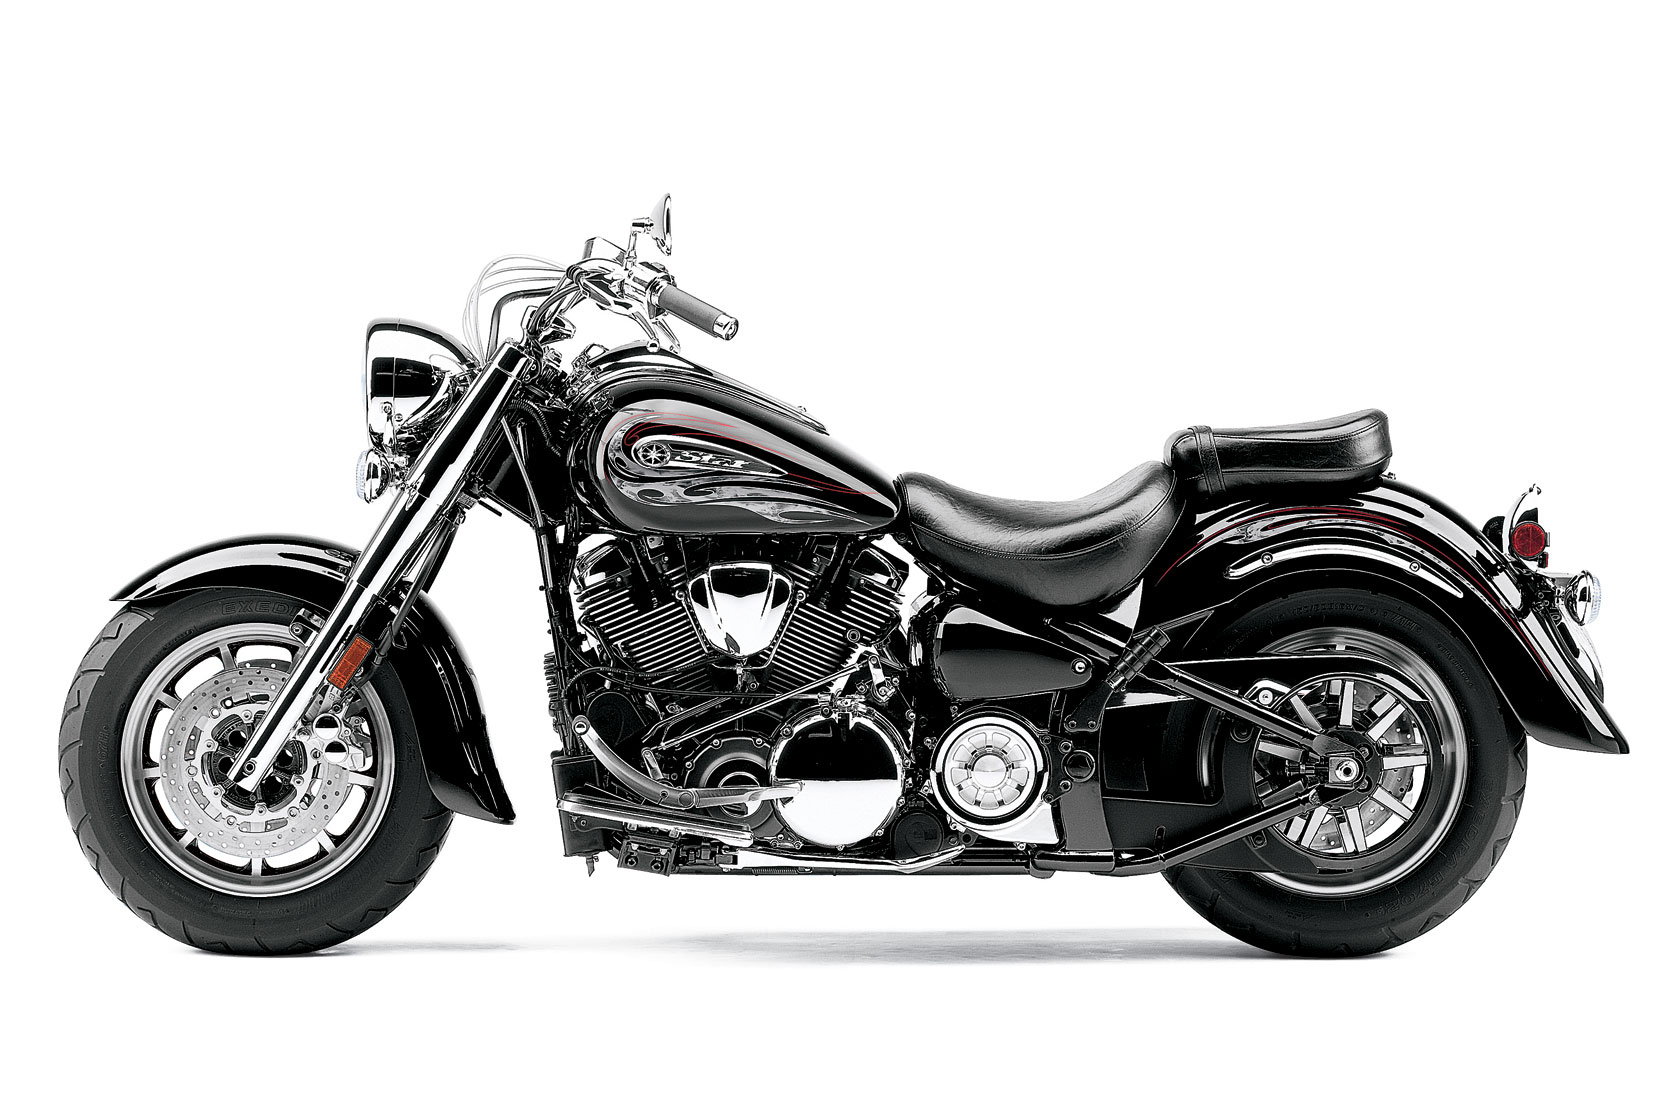 Yamaha Road Star S 2011 #3